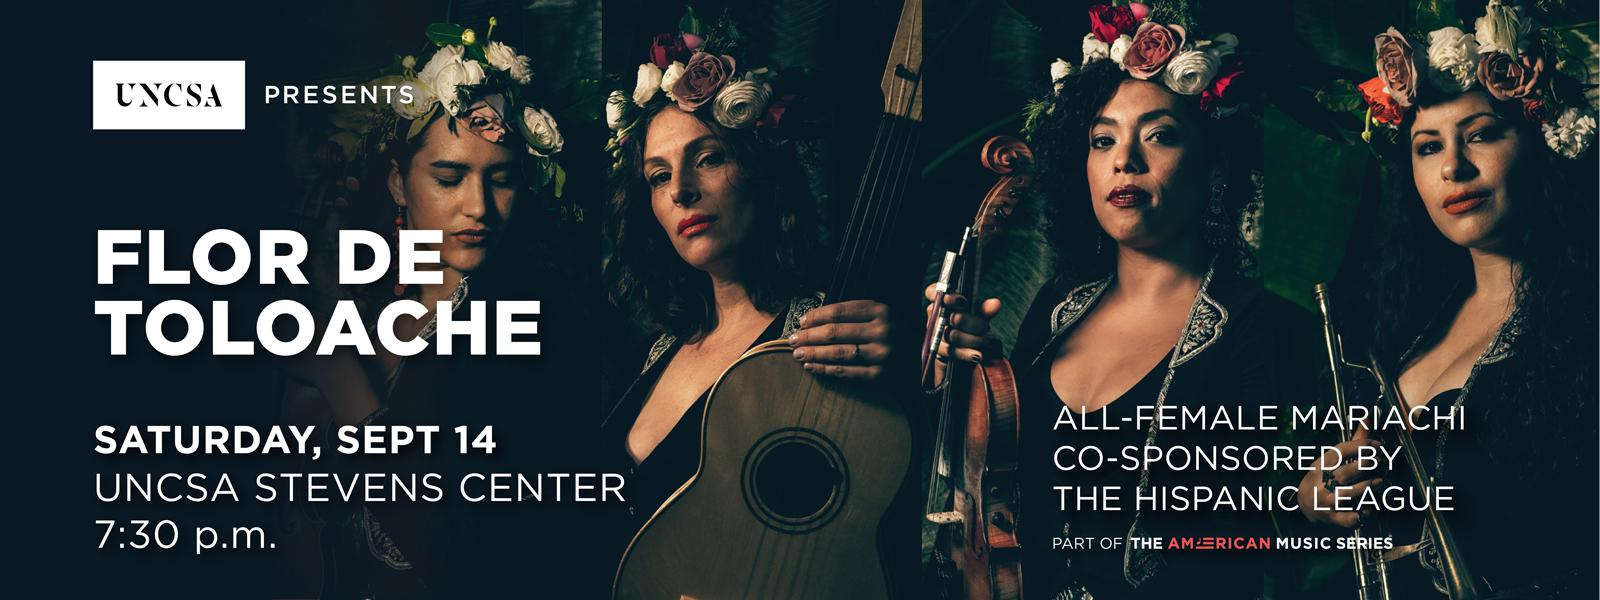 Flor de Toloache's all-female mariachi band has a unique flavor and sound creating a fresh take on traditional Mexican music.>>BUY TICKETS